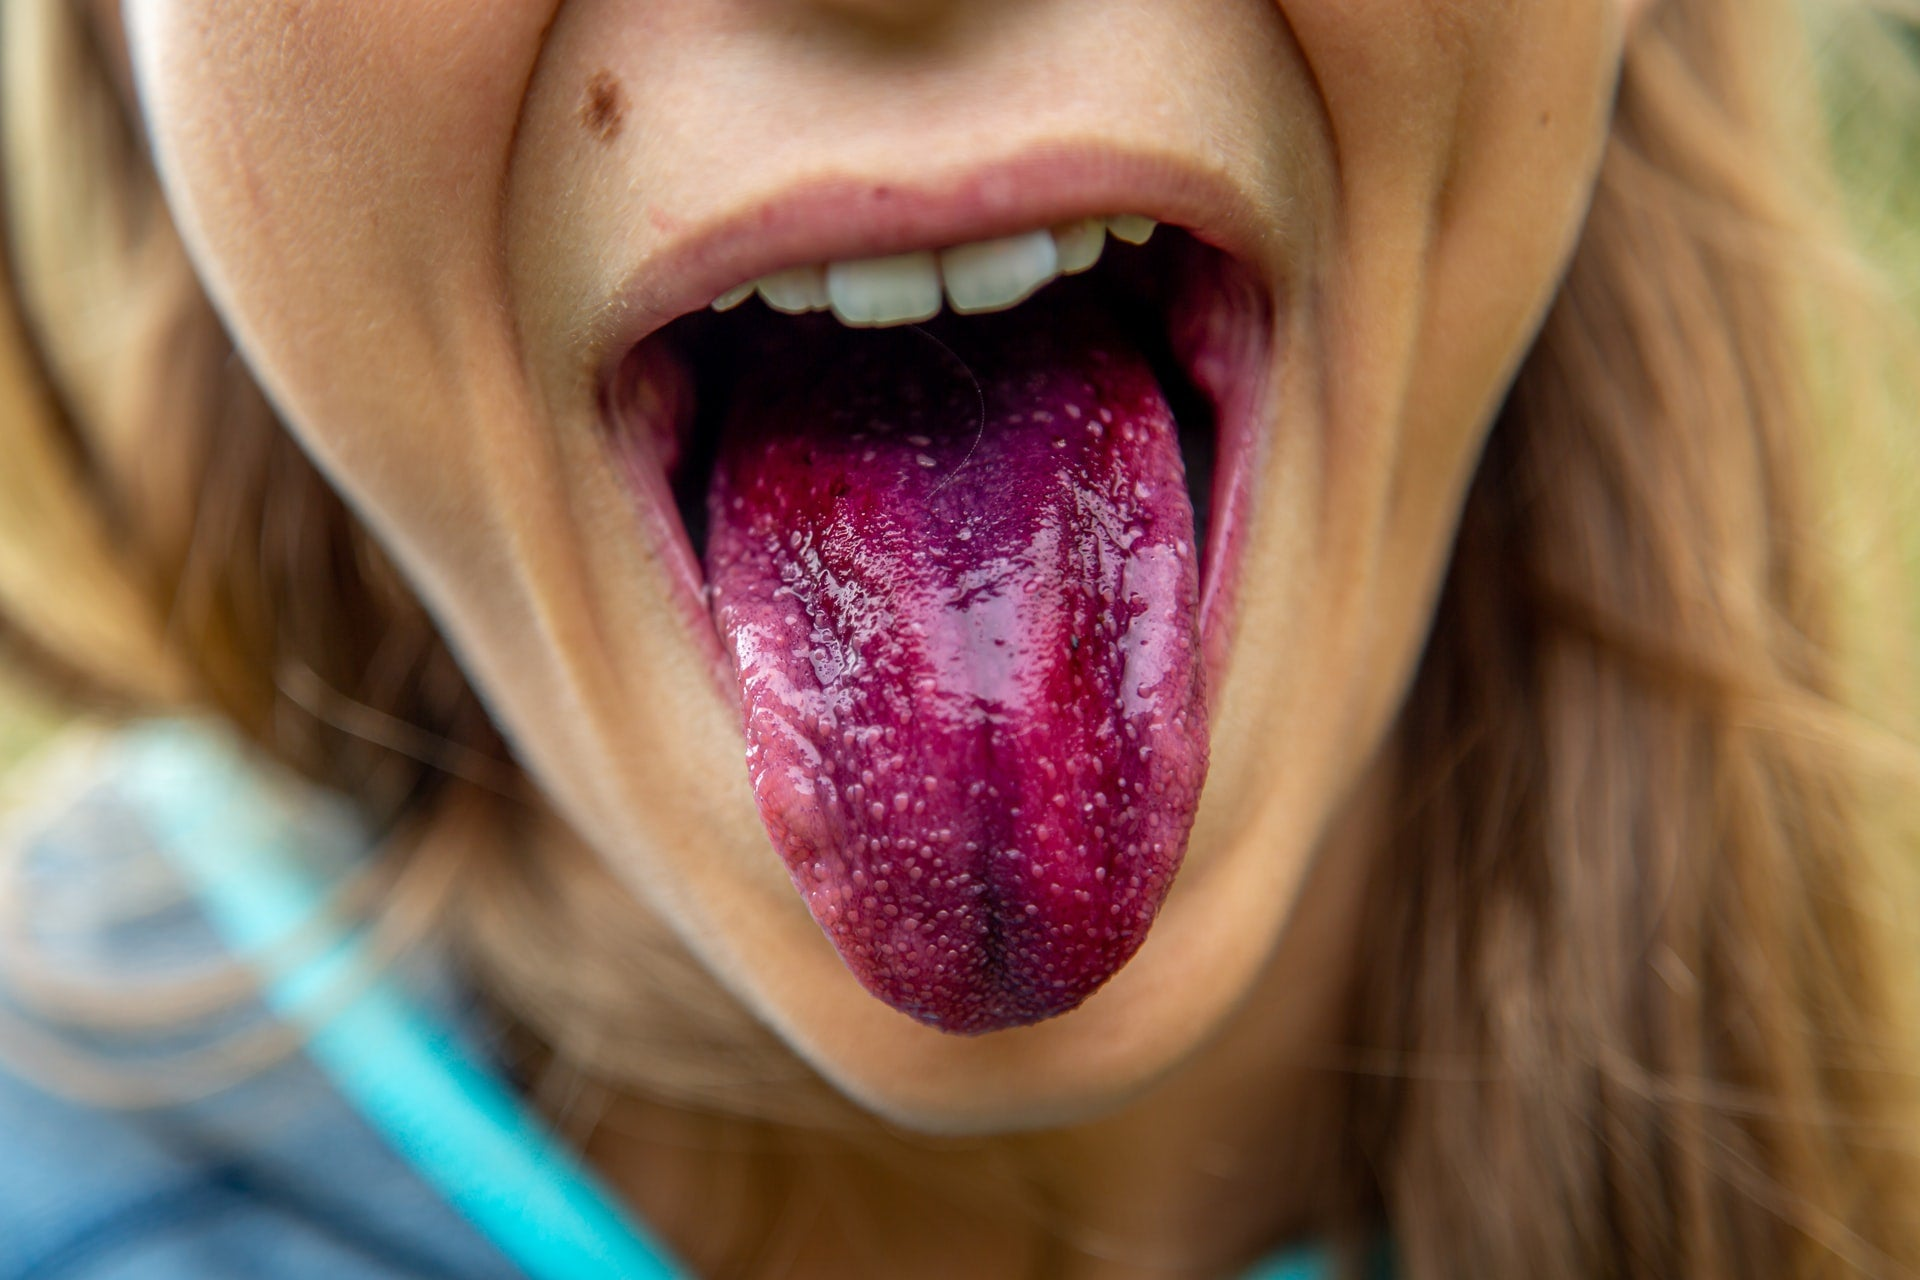 A person sticking out a purple-stained tongue